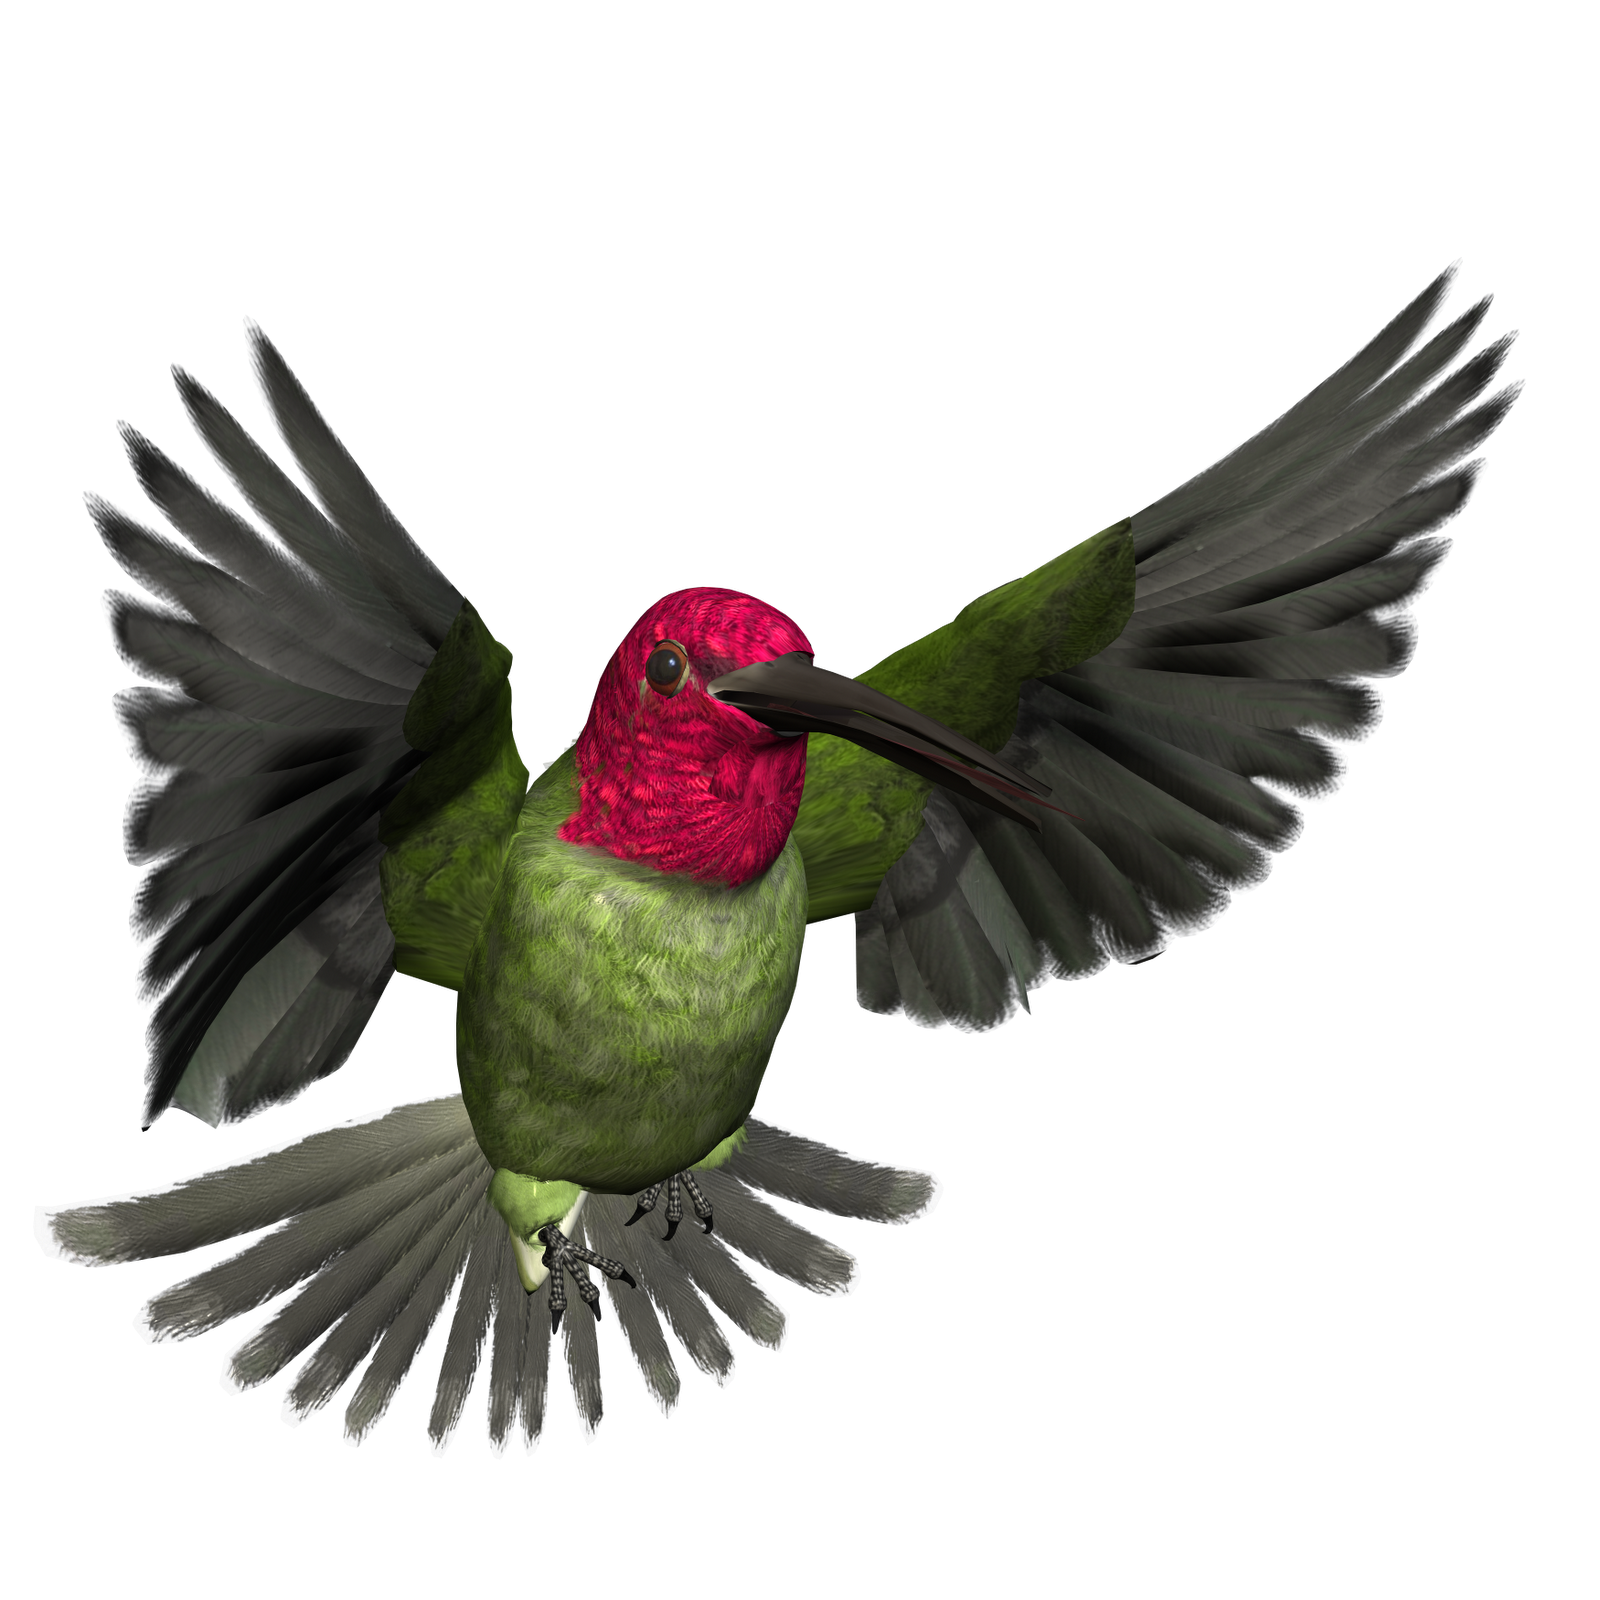 High resolution png images free download. Bird content clip art